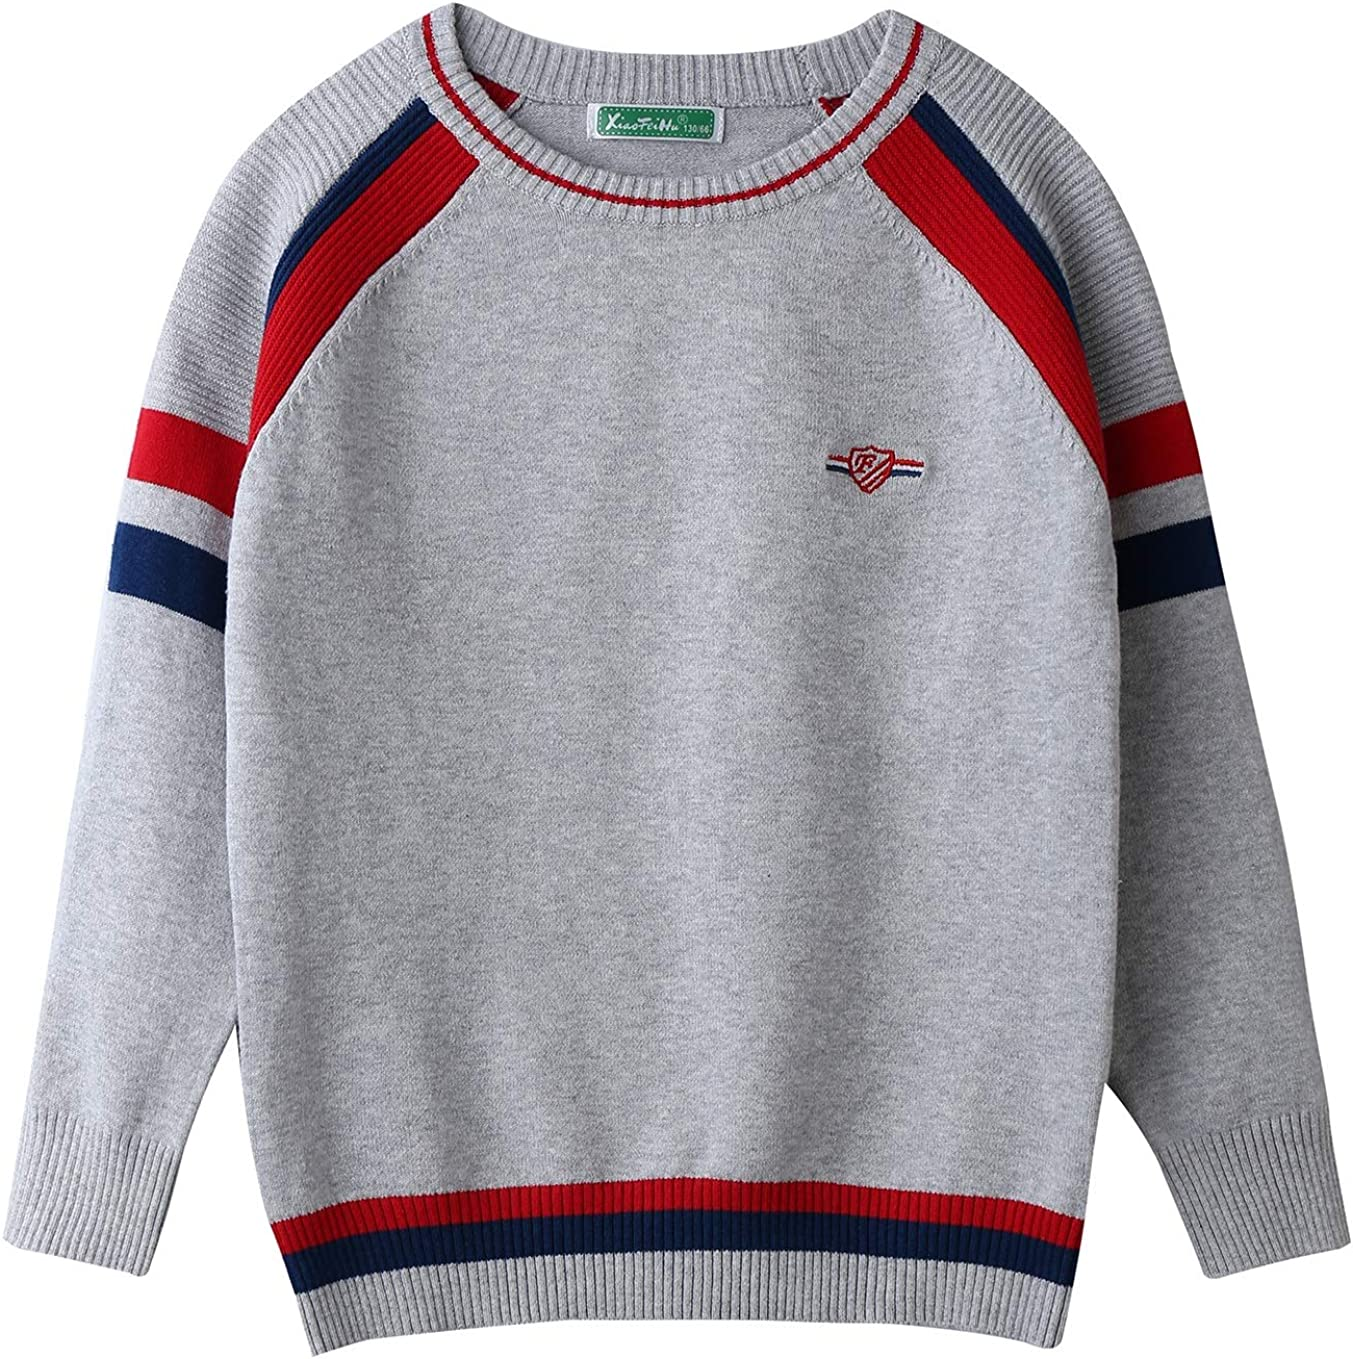 Orchid Boys Round Collar Patchwork Long Sleeve Striped Pullover Sweater 4-10T